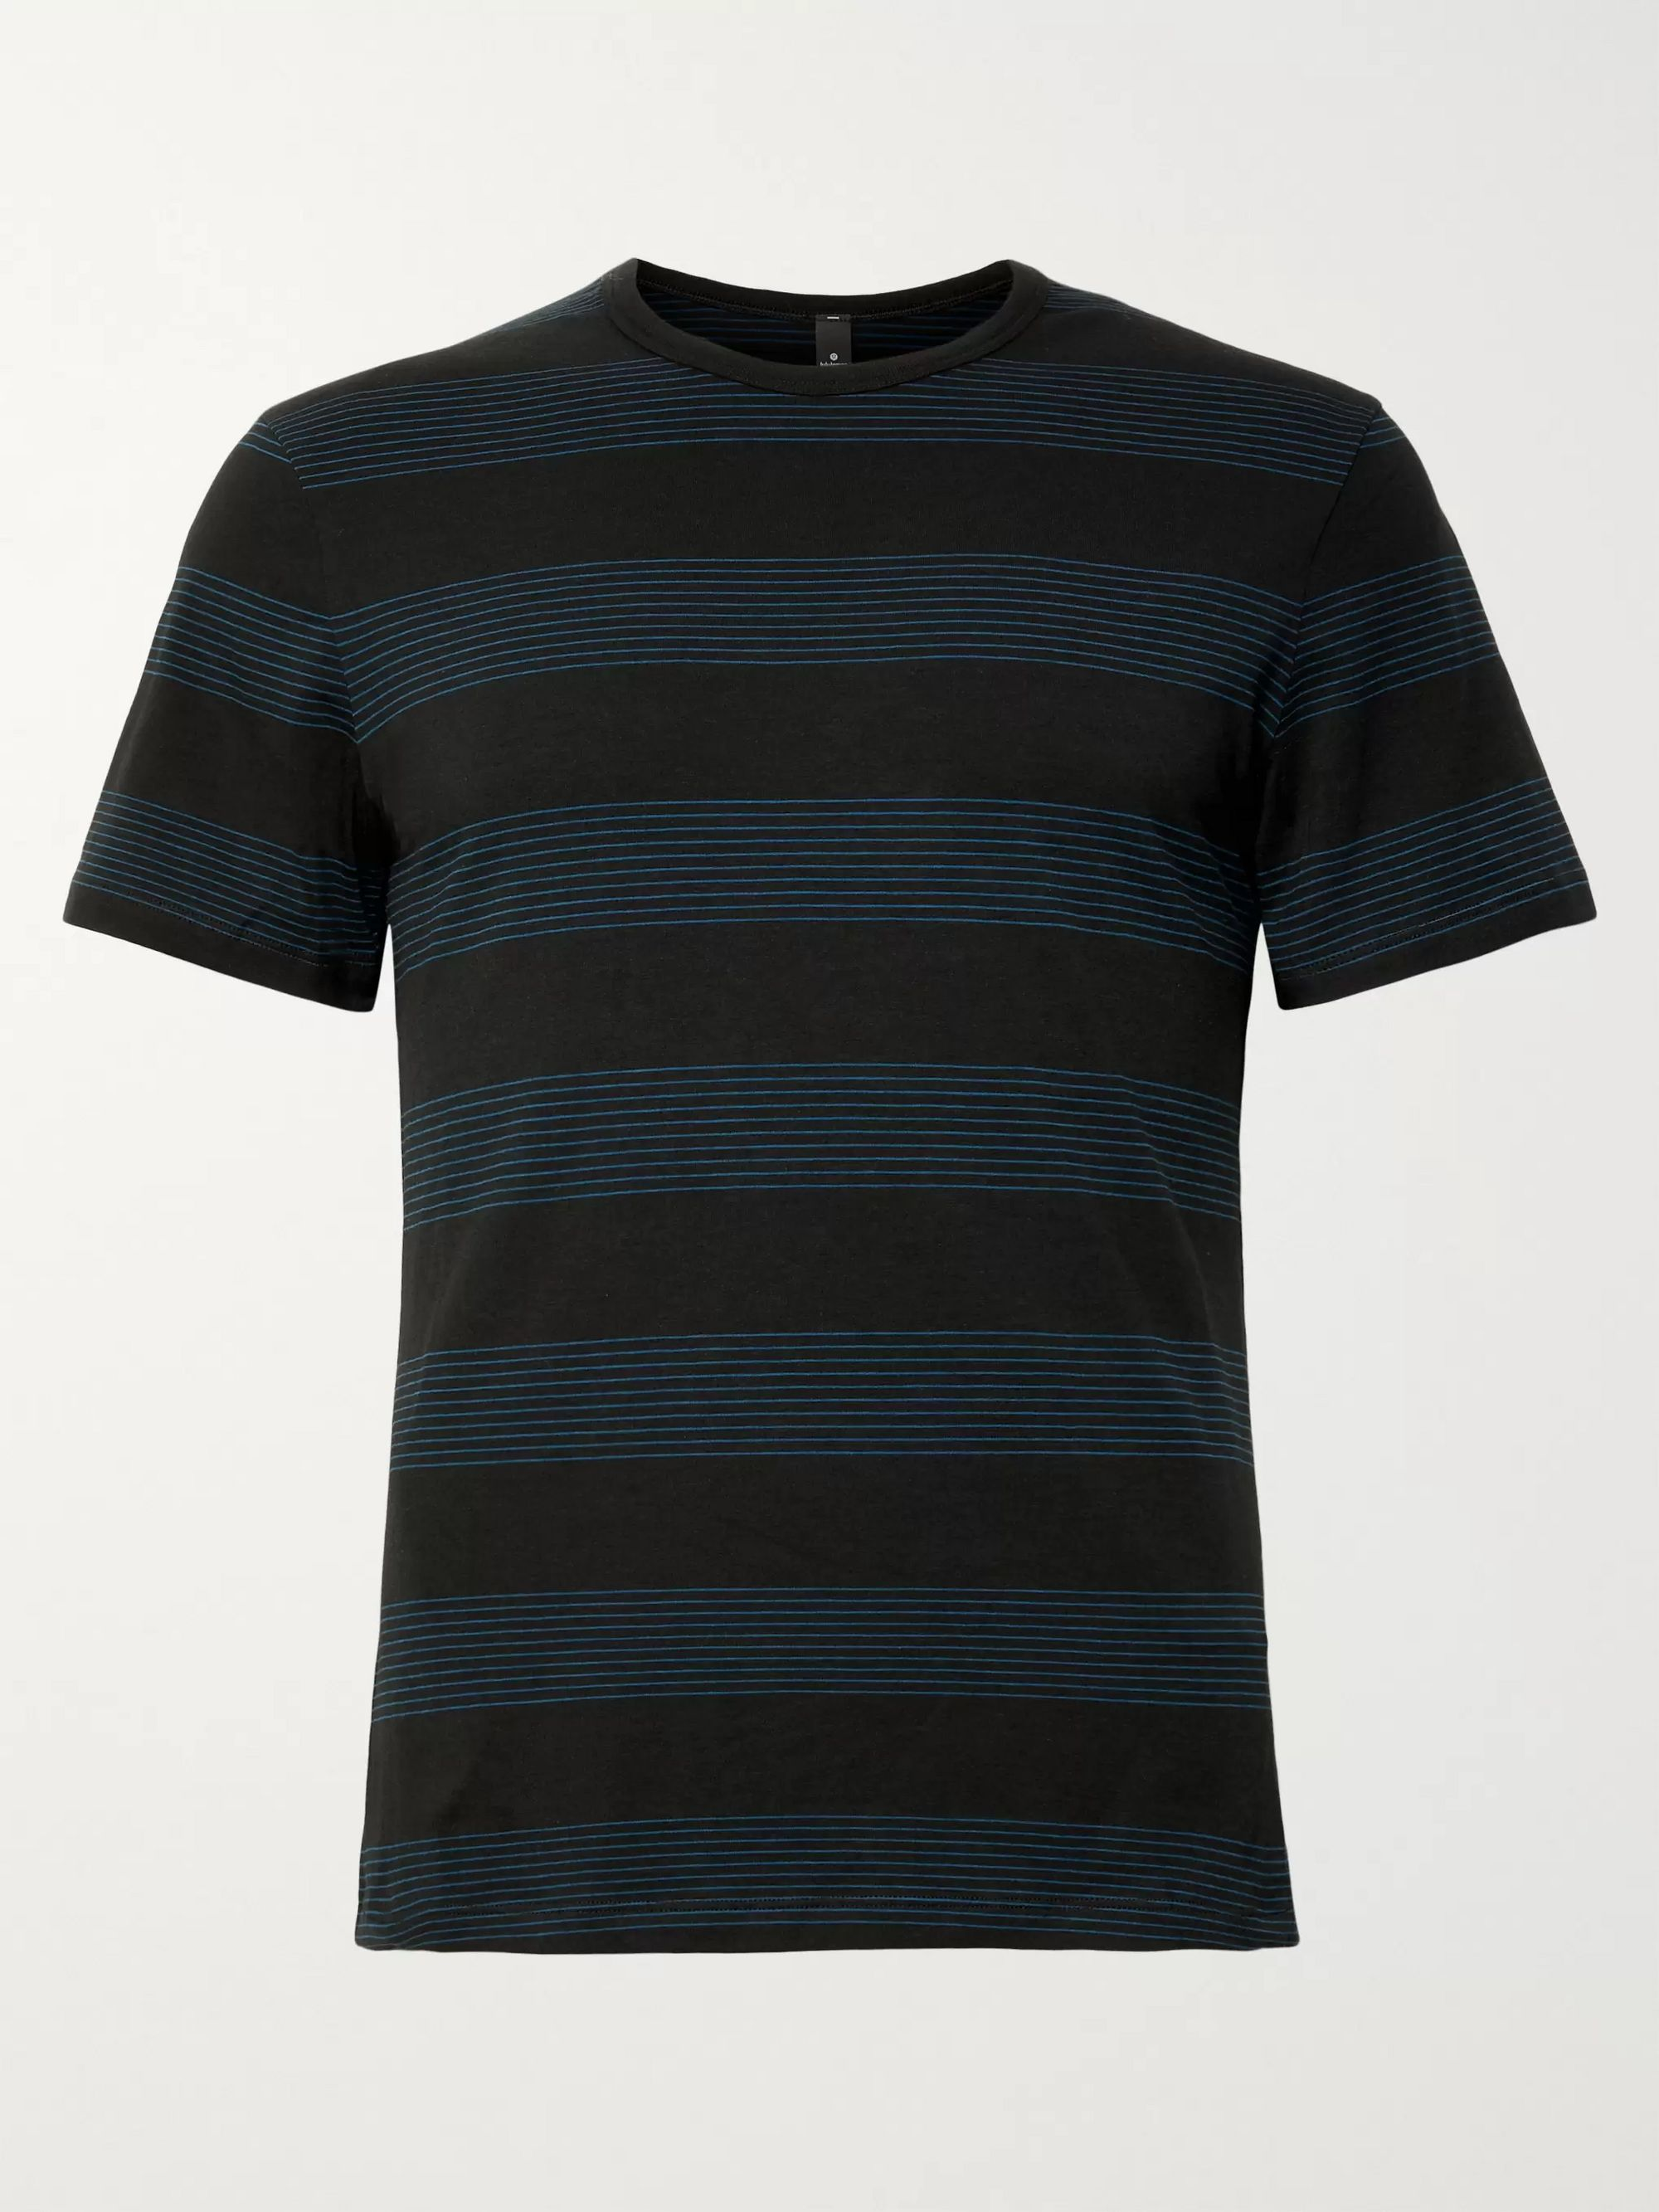 Lululemon 5-Year Basic Striped Vitasea T-Shirt